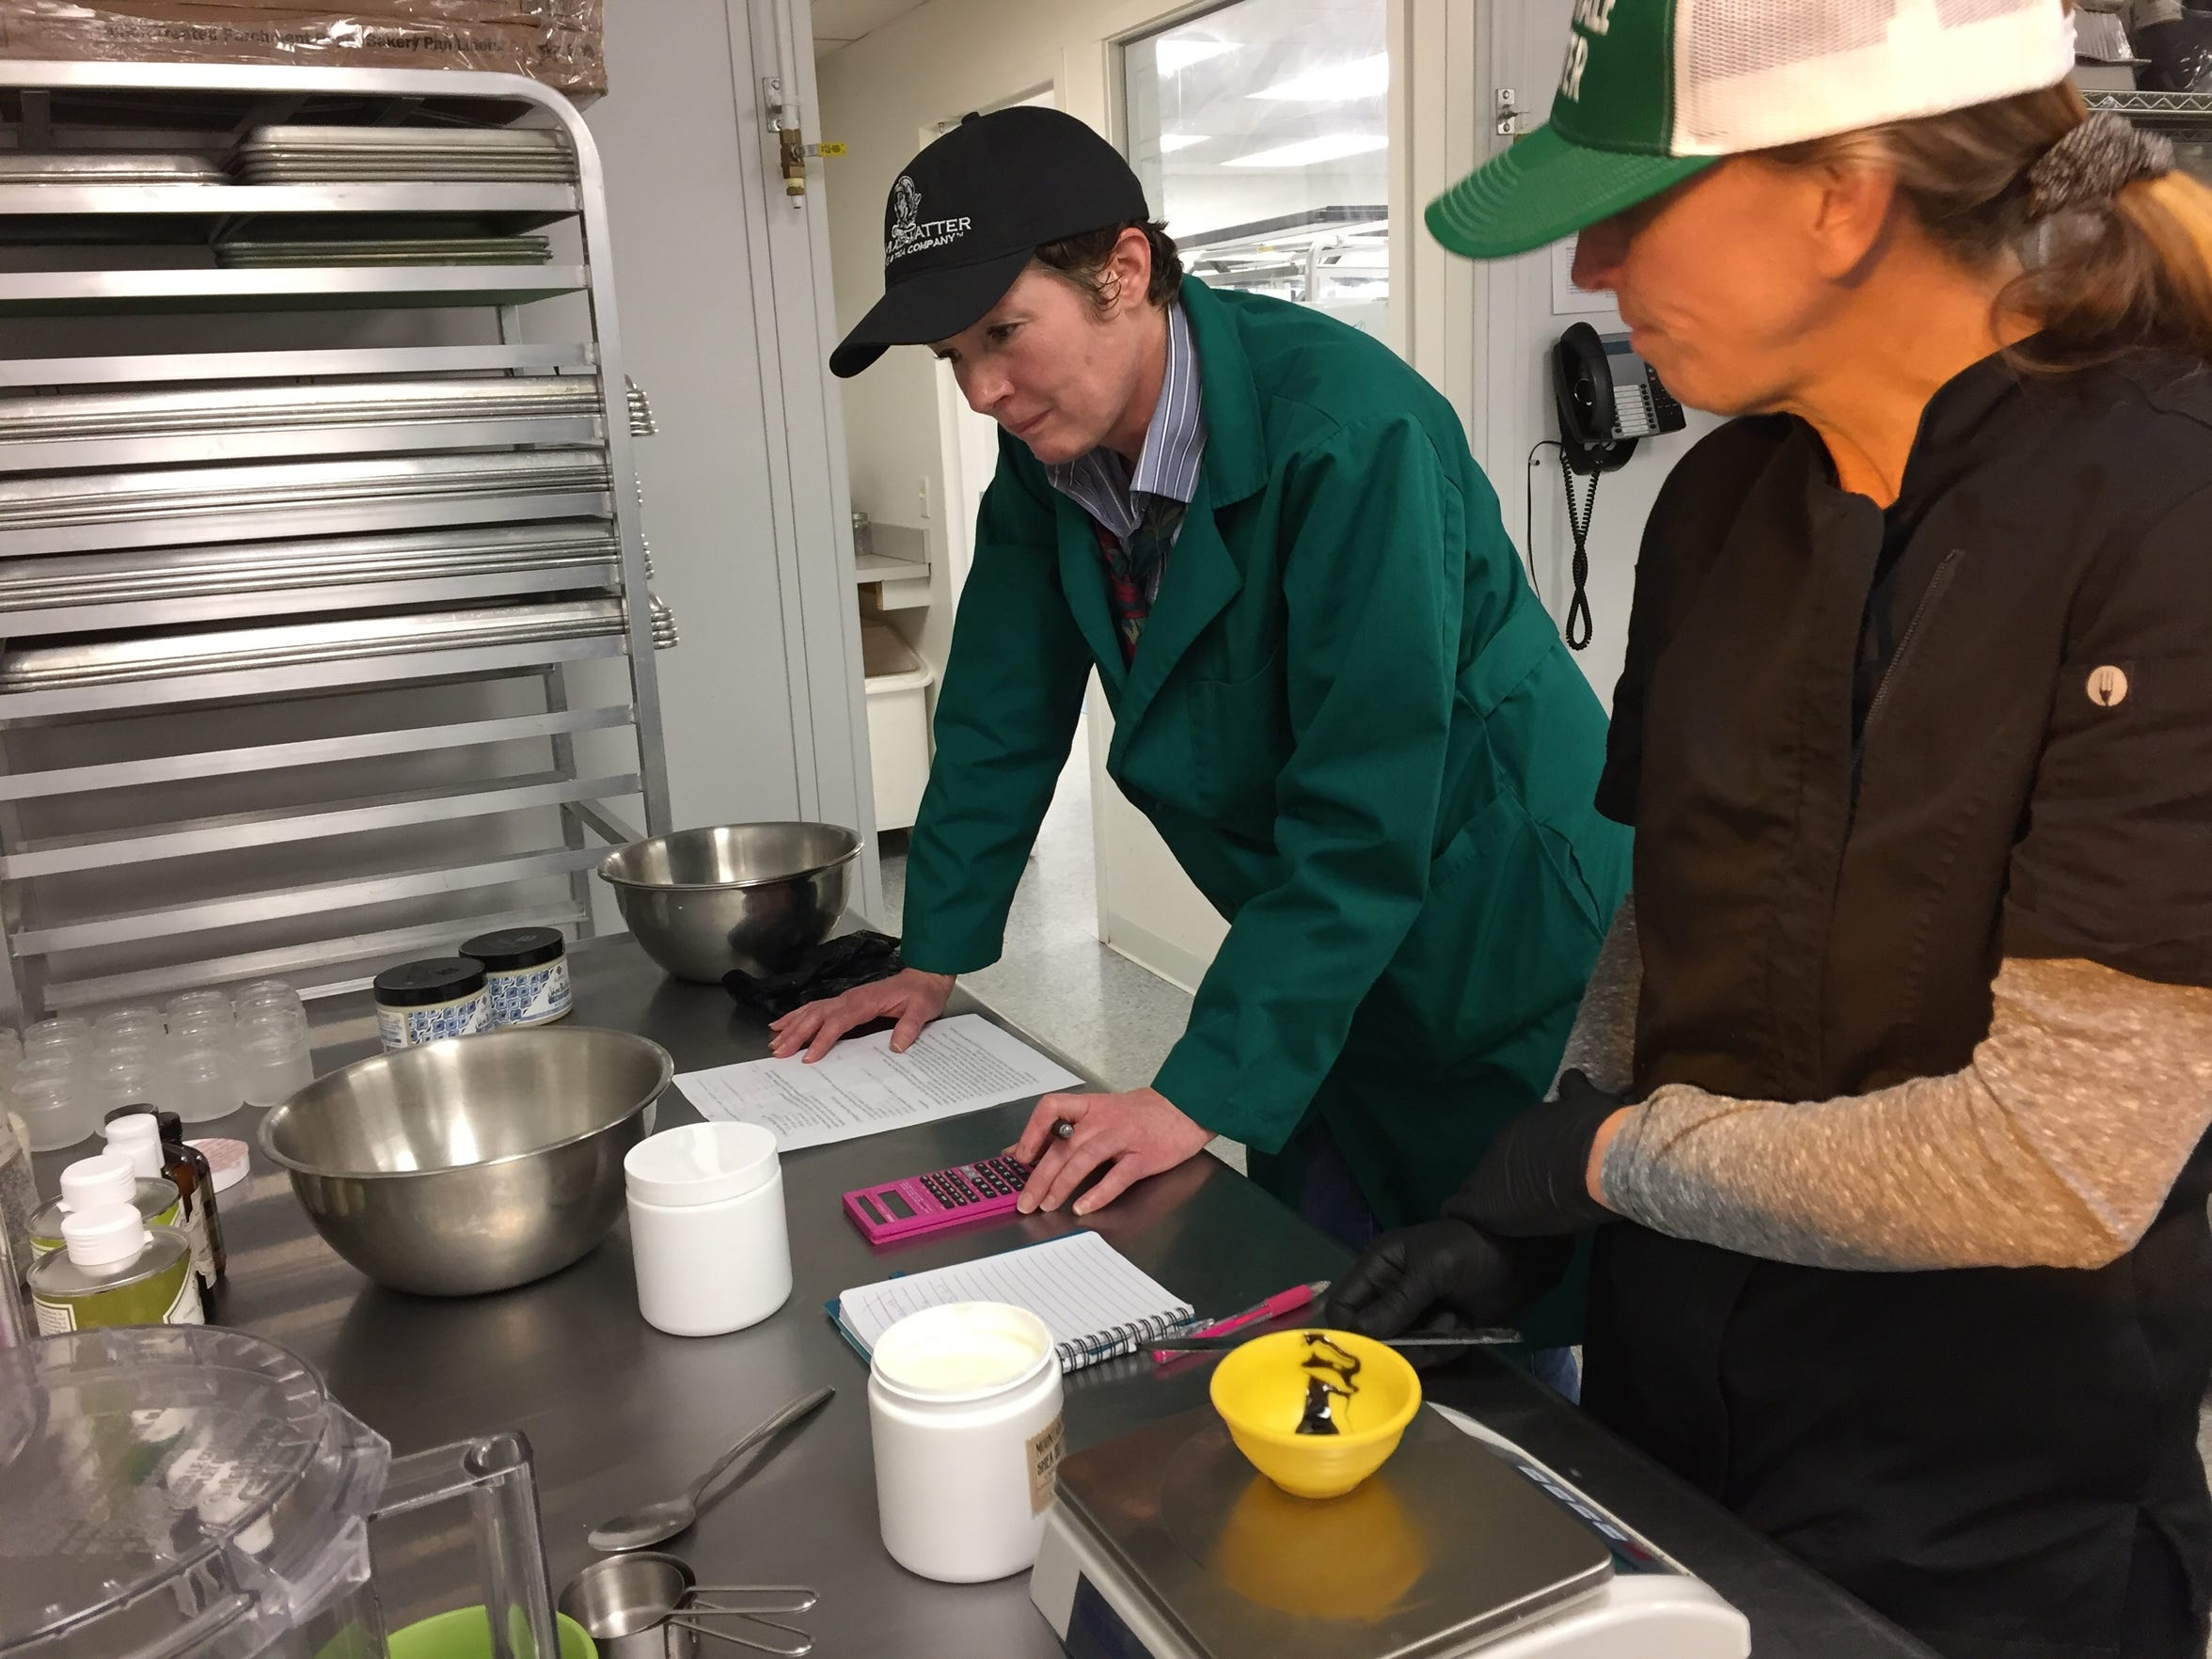 Bridget Conry, left, director of marketing at CVD, Inc., works with Amy Bacon to develop a recipe for a new CBD-infused shea butter scrub in the commercial kitchen at the production facility.